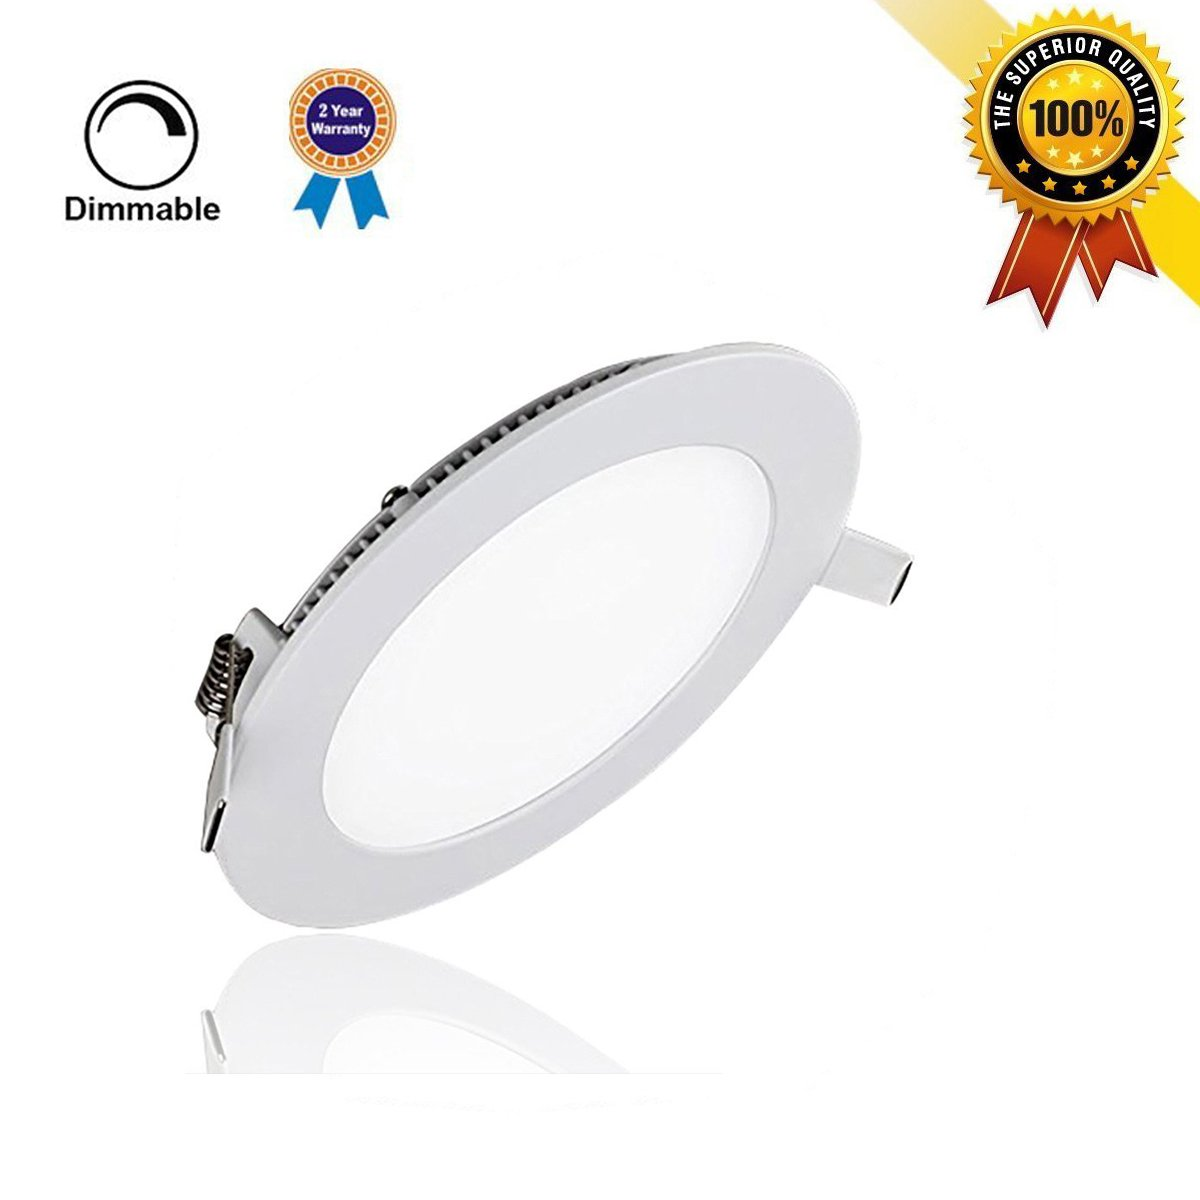 szwintec 12W LED Ceiling Light Lamp, Dimmable Ultra-thin Round Recessed Panel Light, 80W Incandescent Equivalent, 960lm, Neutral White 4000K, Cut Hole 6.1 Inch, Downlight with 110V LED Driver